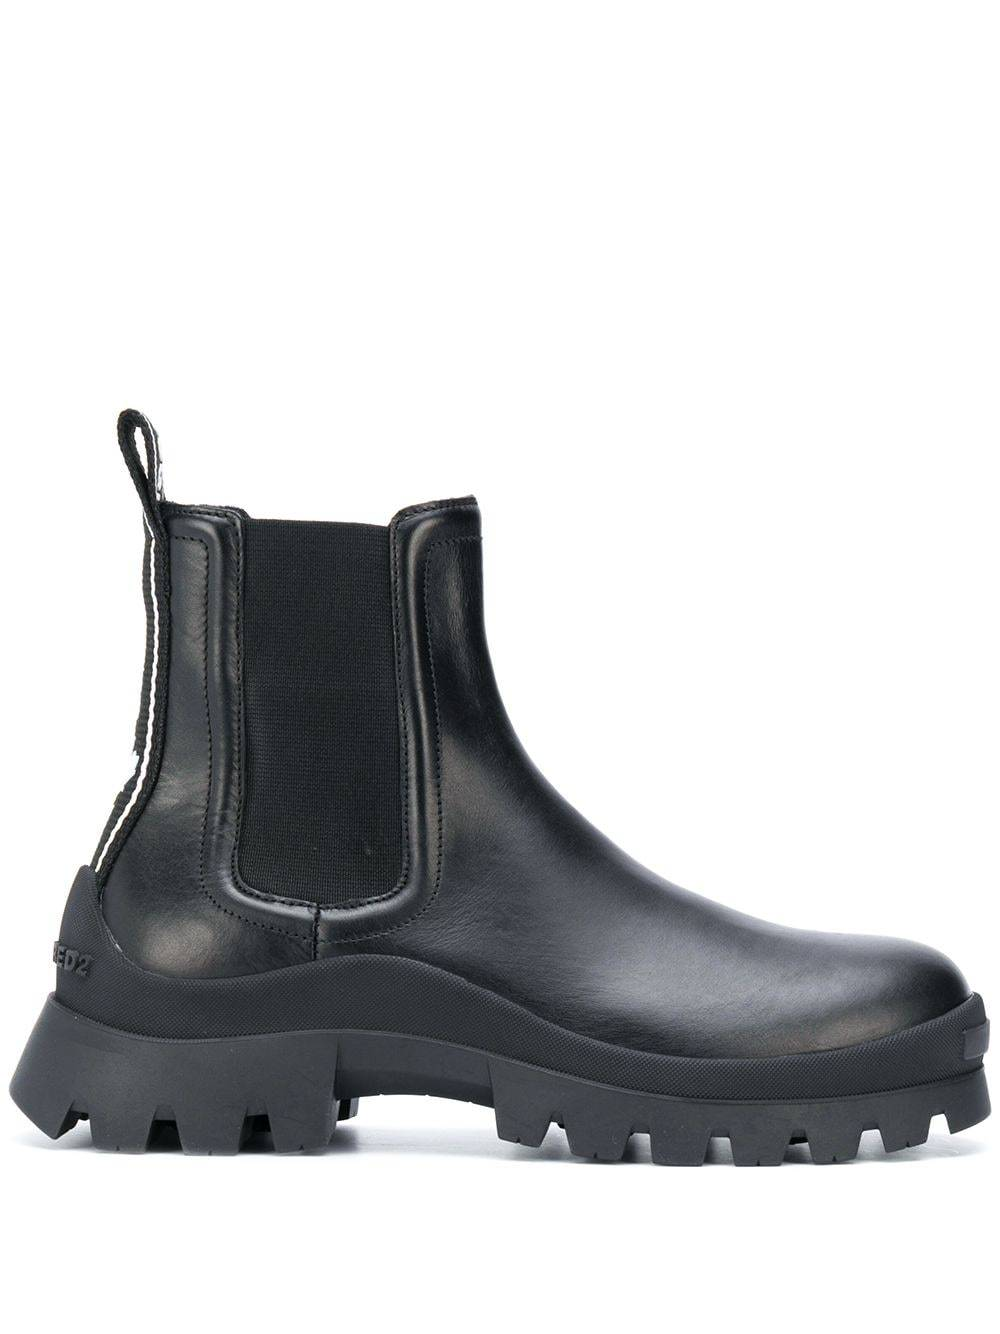 DSQUARED2 Flat Ankle Boots Black